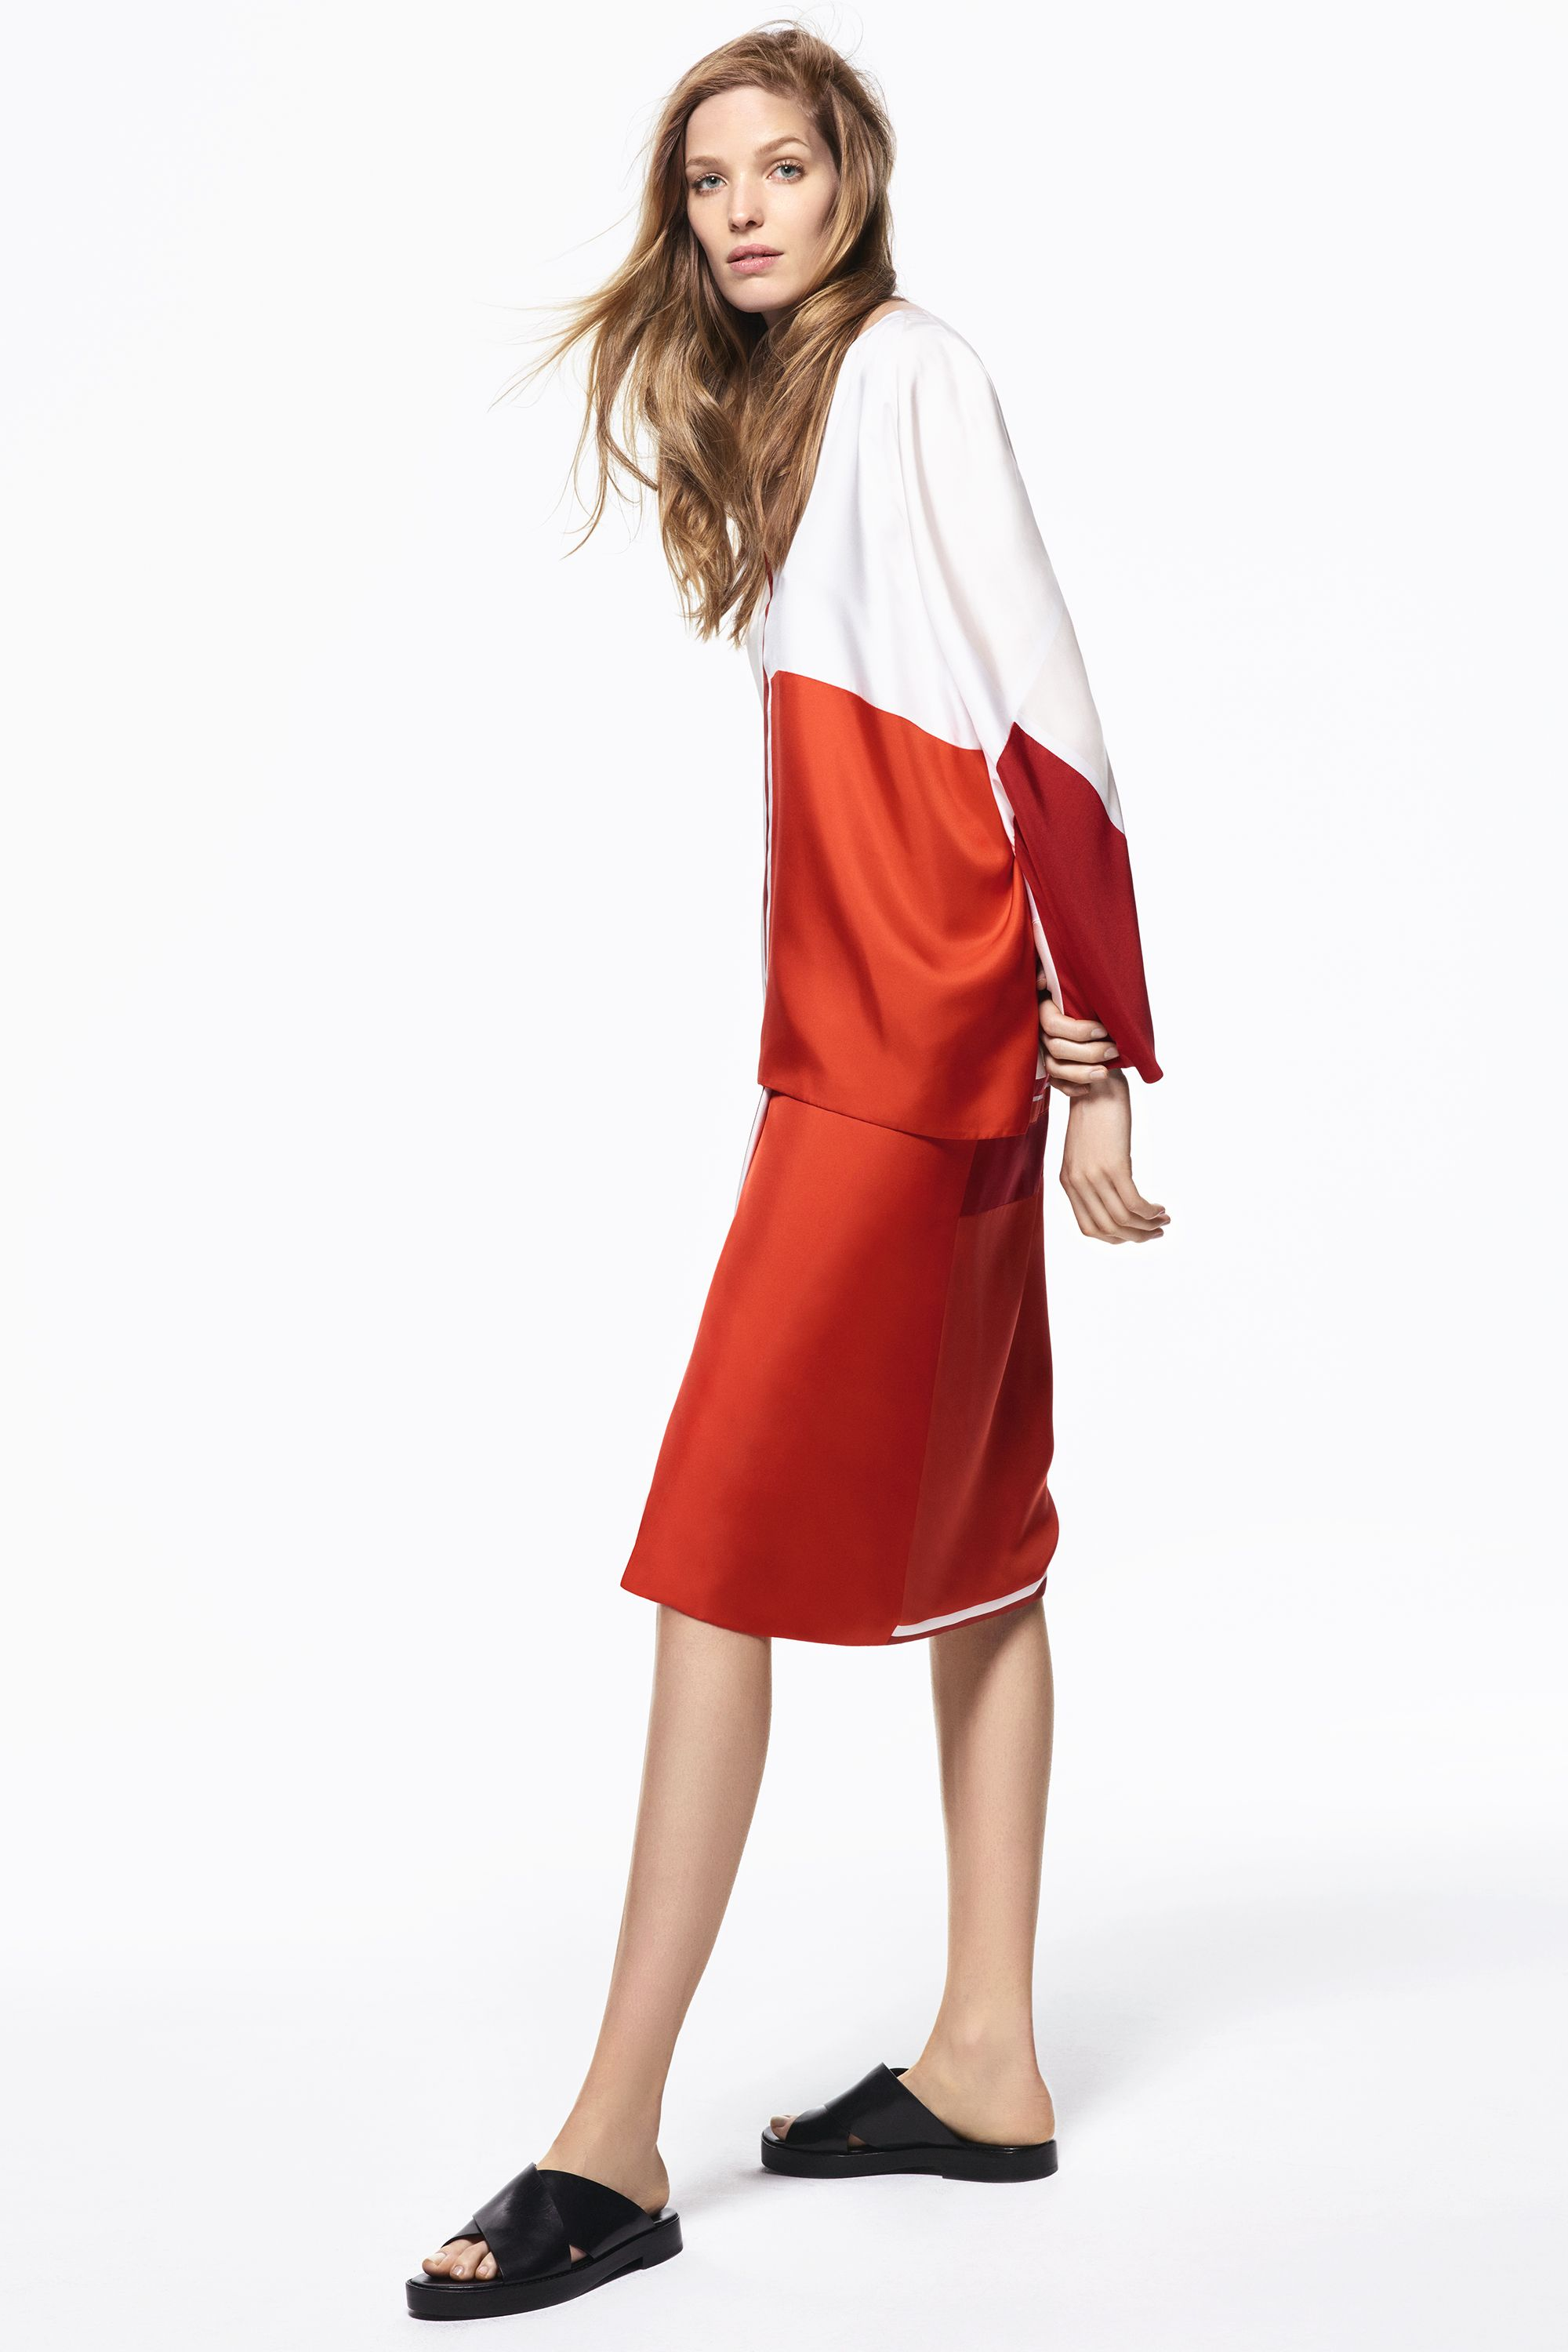 "<p>Play up silky separates by choosing ones in poppy hues.</p><p><strong>Hermès </strong>blouse and skirt, prices upon request, 800-441-4488; <strong>Michael Kors </strong><span class=""redactor-invisible-space""><strong>Collection </strong><span class=""redactor-invisible-space"">sandals, $425, 866-709-KORS.</span></span></p>"